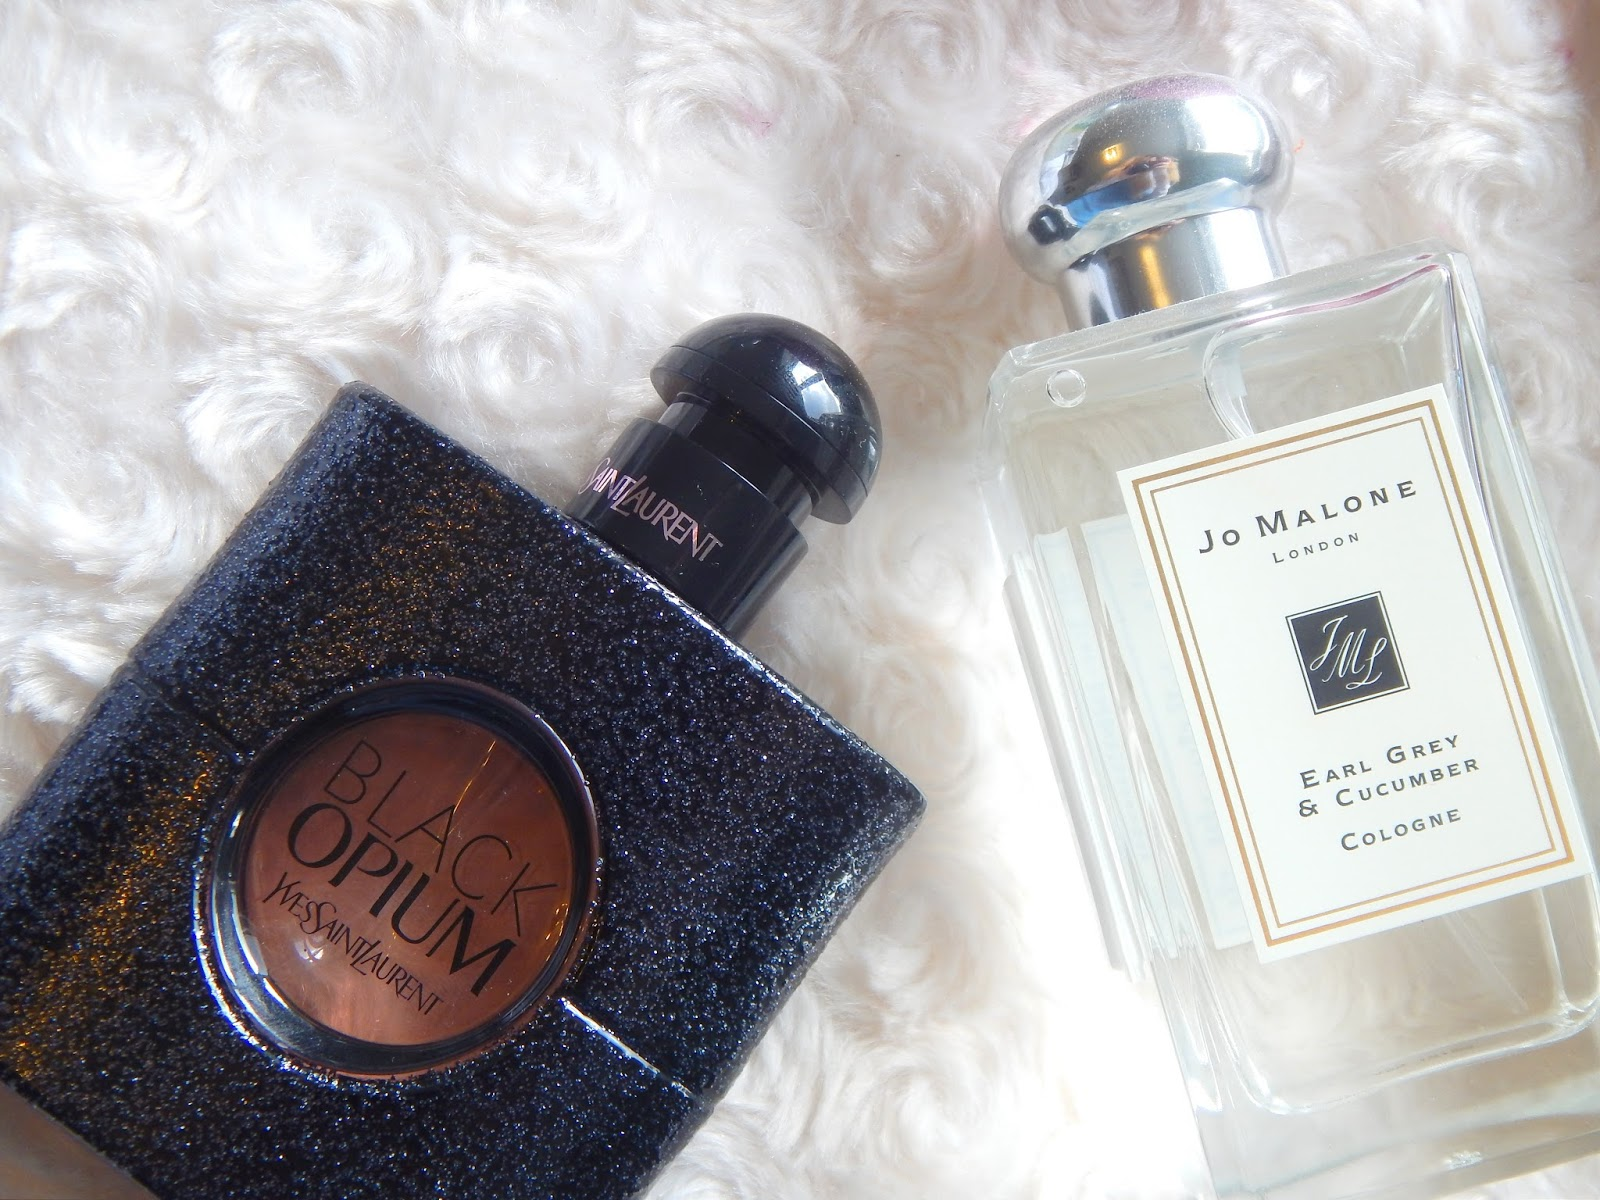 YSL Black Opium and Jo Malone Earl Grey and Cucumber